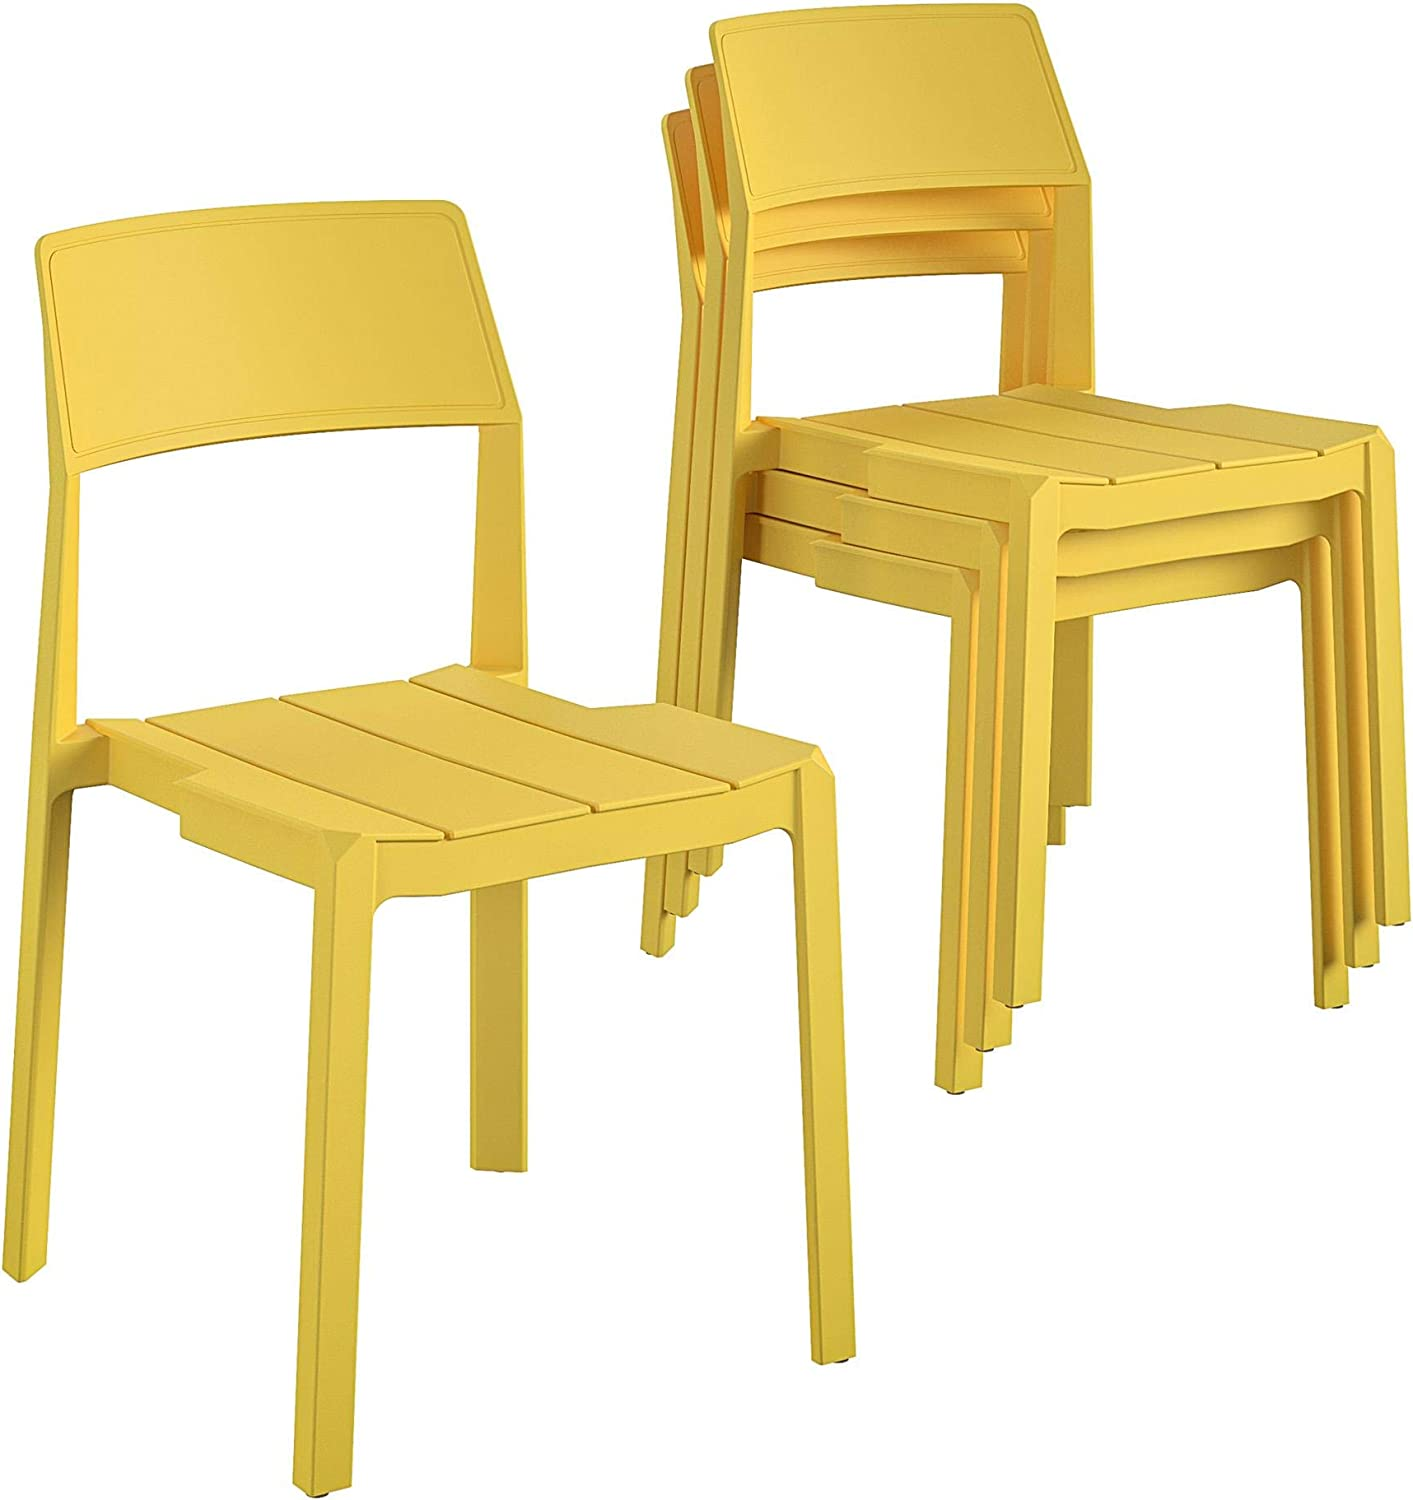 Novogratz Poolside Collection, Chandler Stacking, 4-Pack, Bright Yellow Dining Chairs